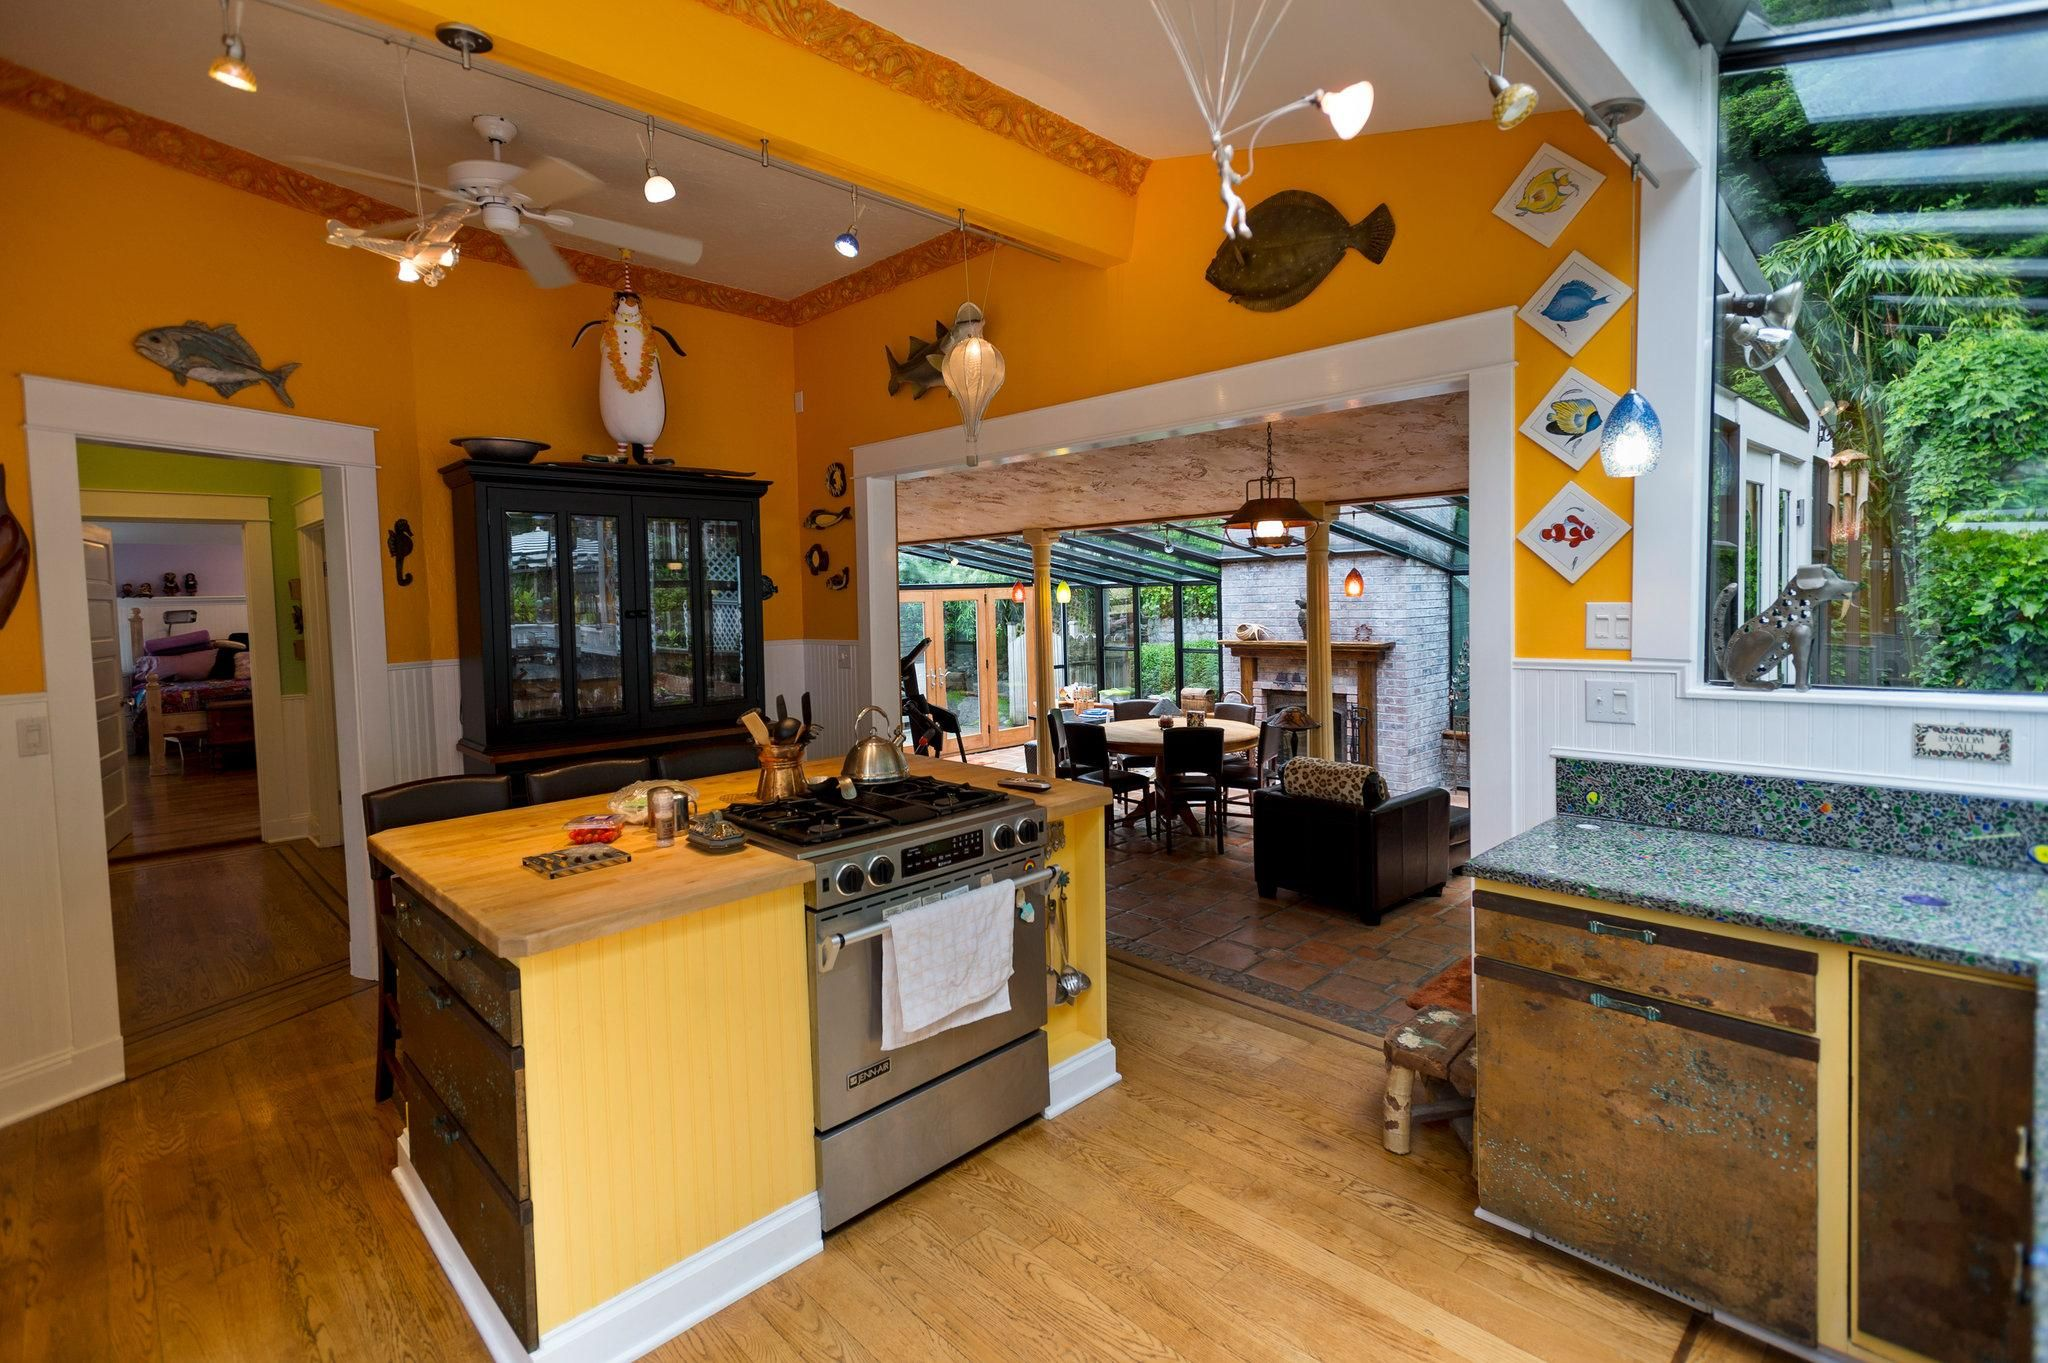 Homes for $1 Million (Published 2012) | Home, Yellow ...